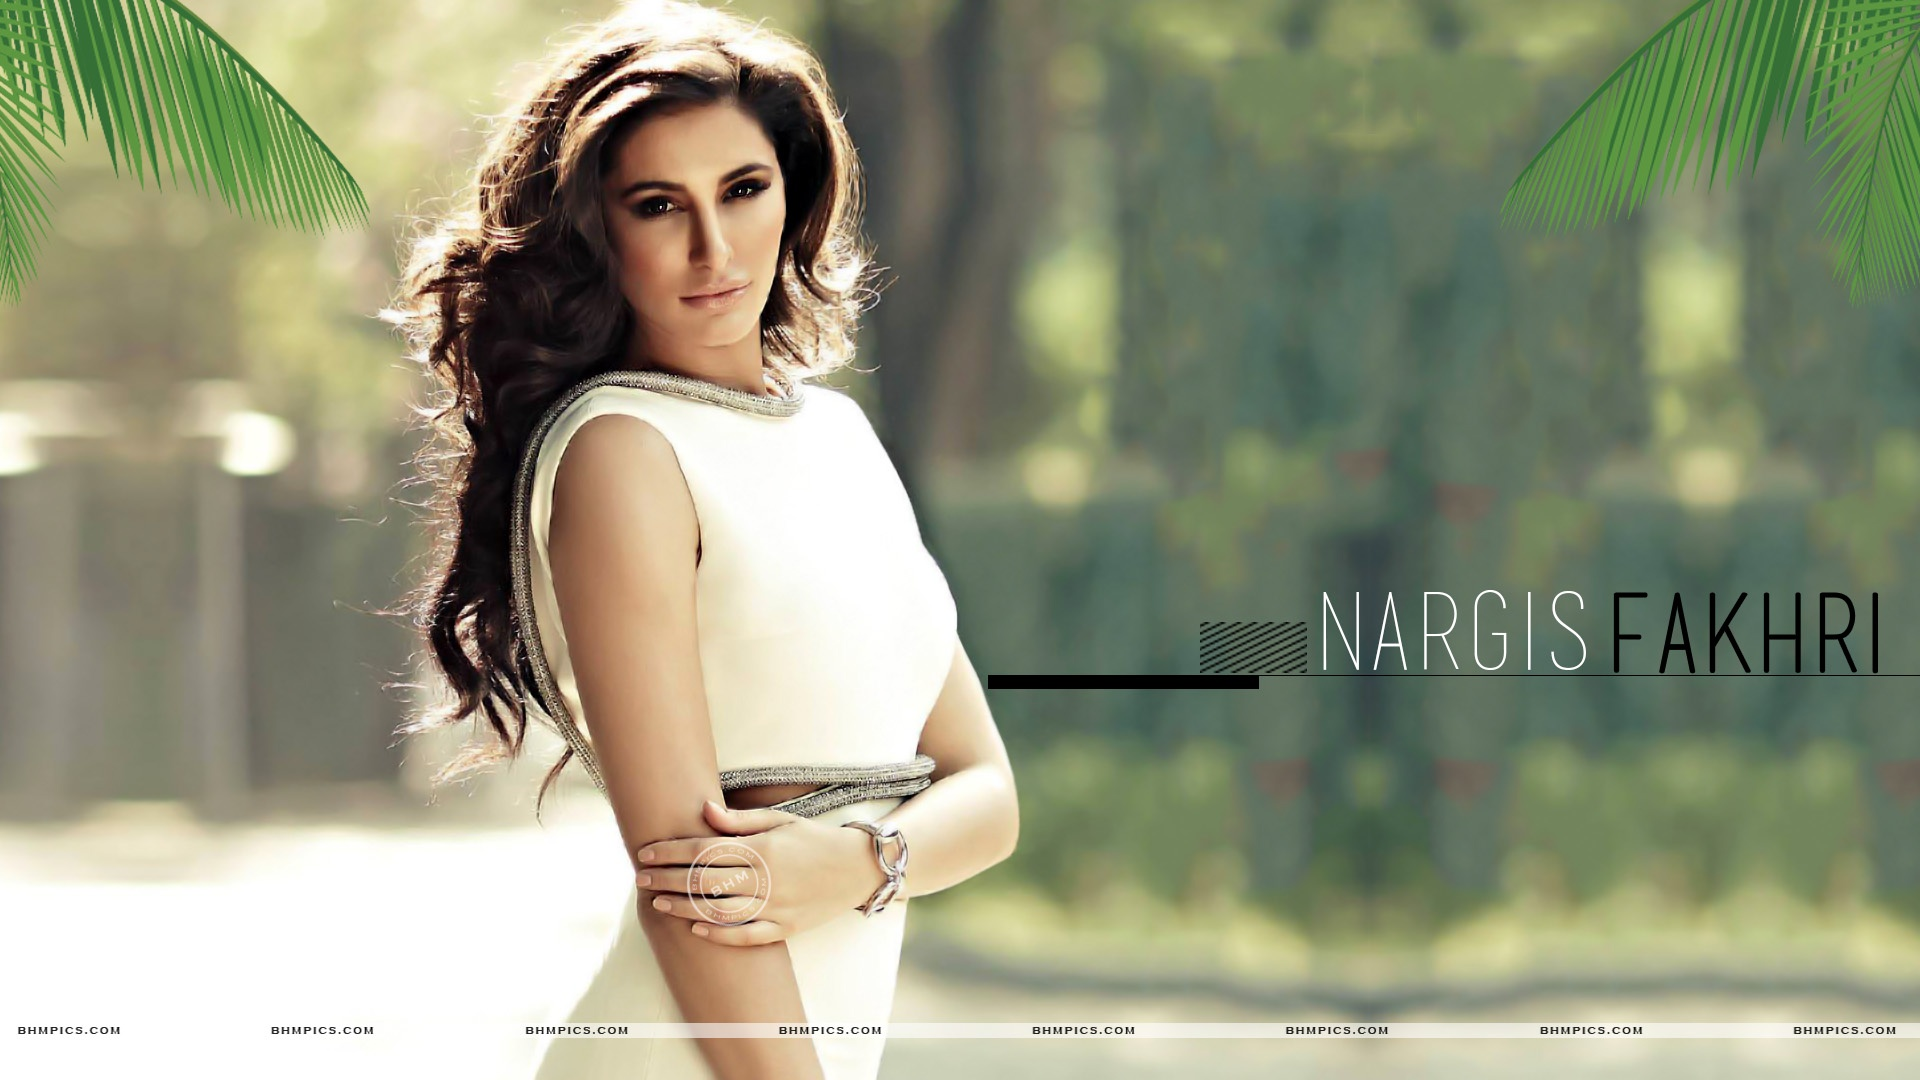 Nargis Fakhri Actress